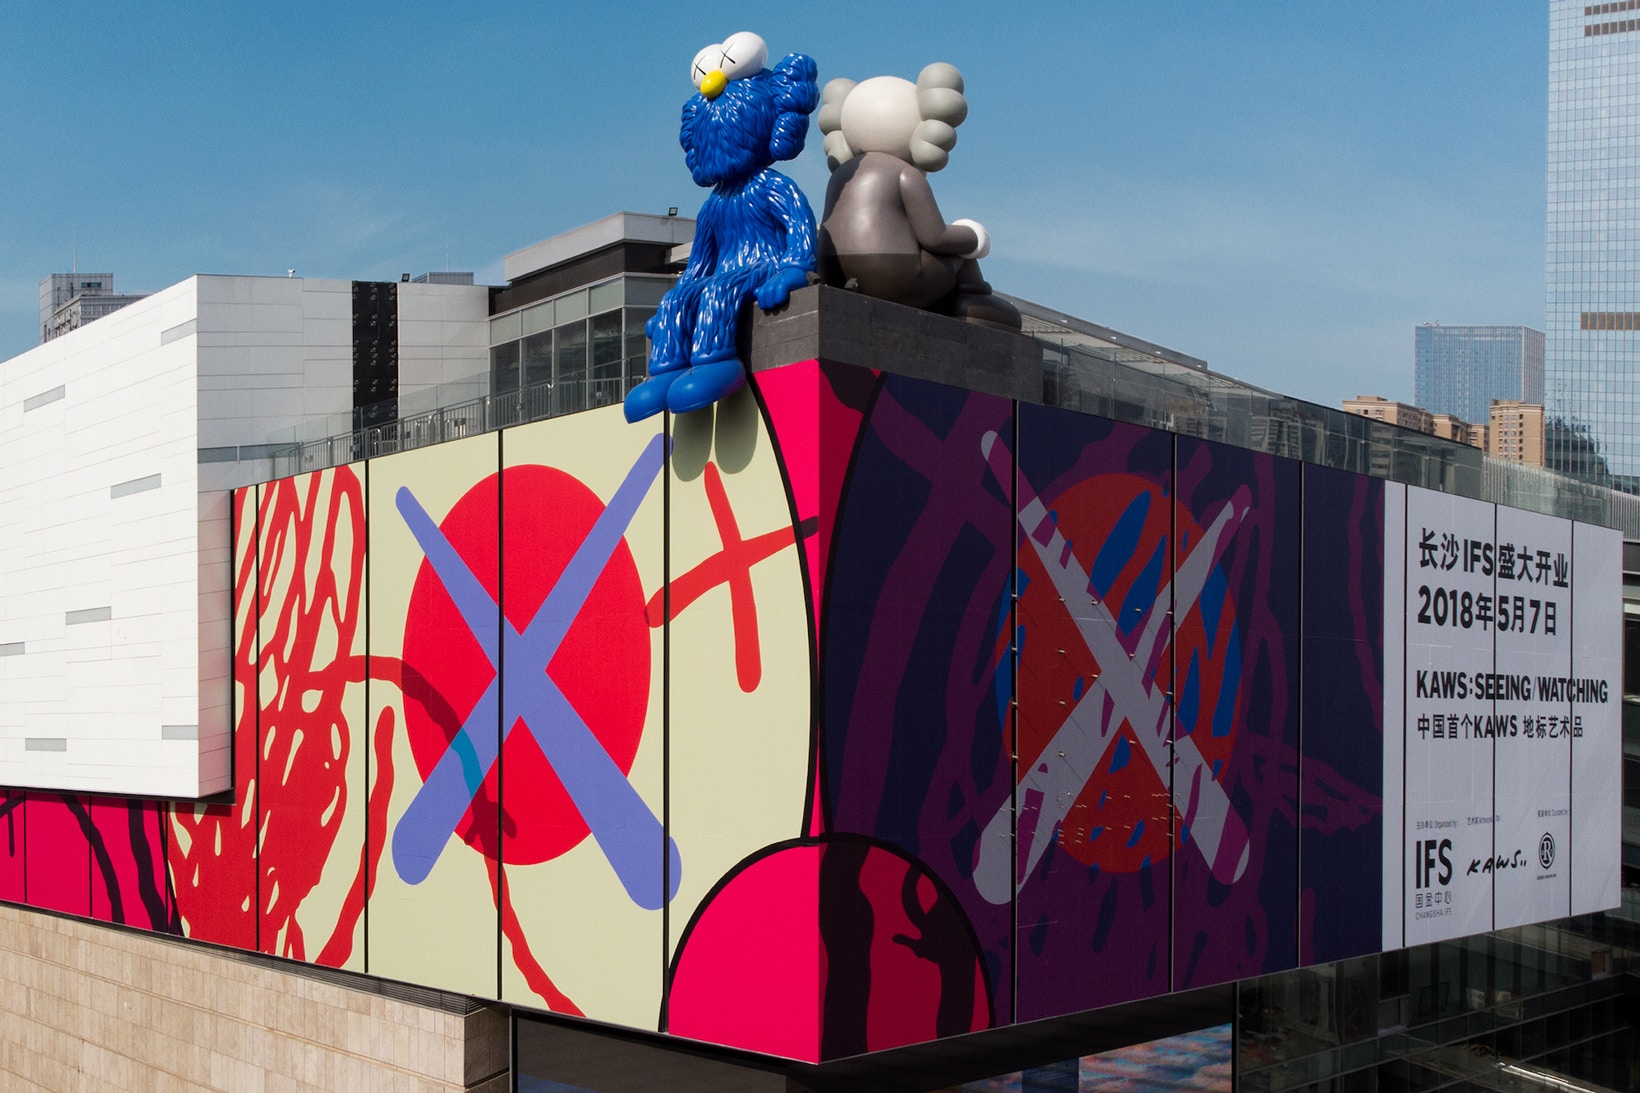 kaws-seeing-watching-changsha-ifs-permanent-sculptures-china-2